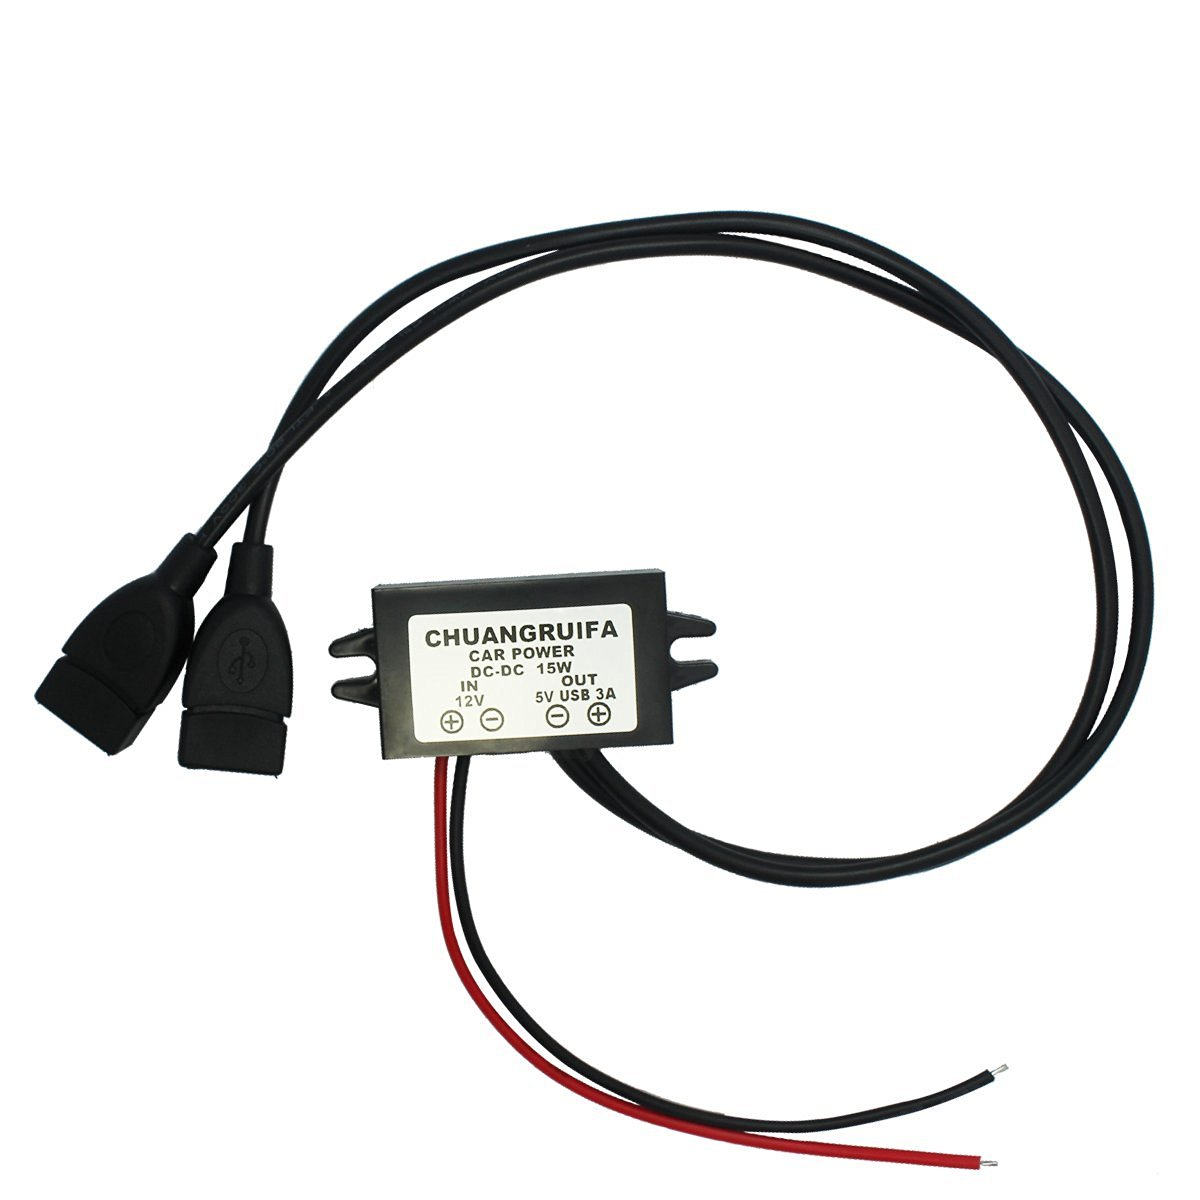 Cheap Dual Dc Converter Find Deals On Line 5vdc To 12v And Isolated Power Supply Get Quotations Esumic 5v Car Voltage Parallel Usb Adapter Connector